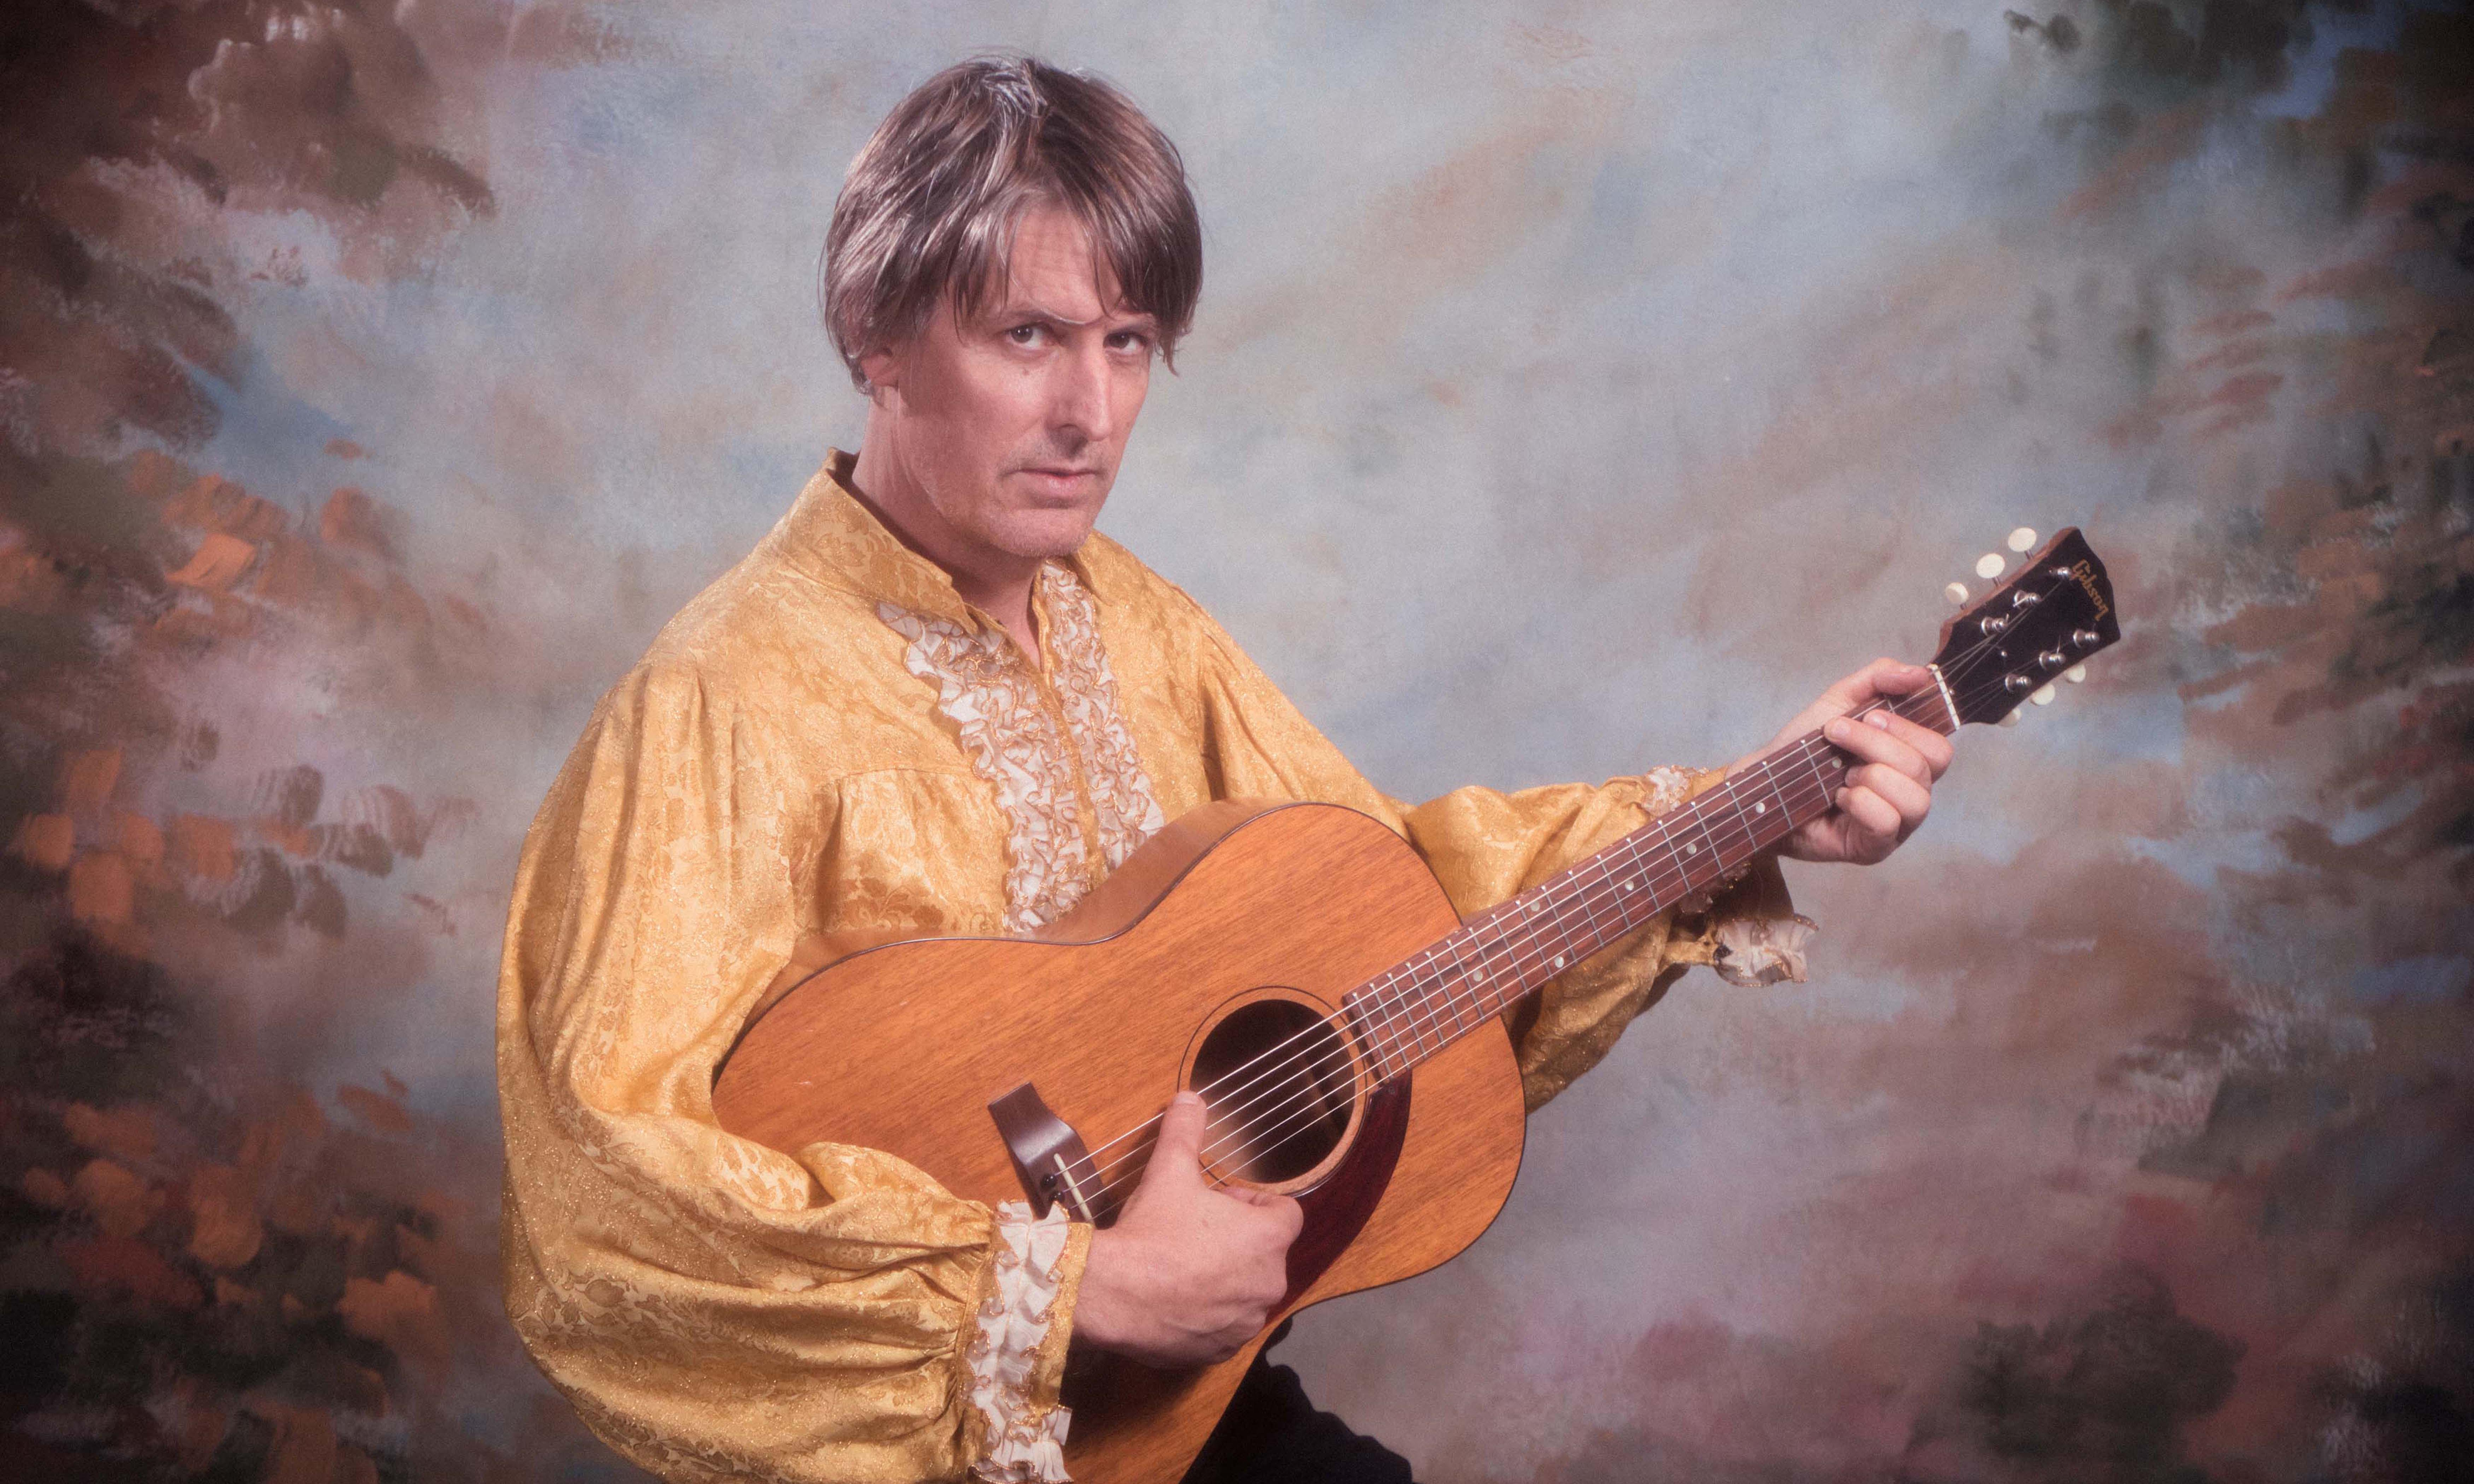 Stephen Malkmus: 'There's this reggae song where I sing in patois – it should not be heard'